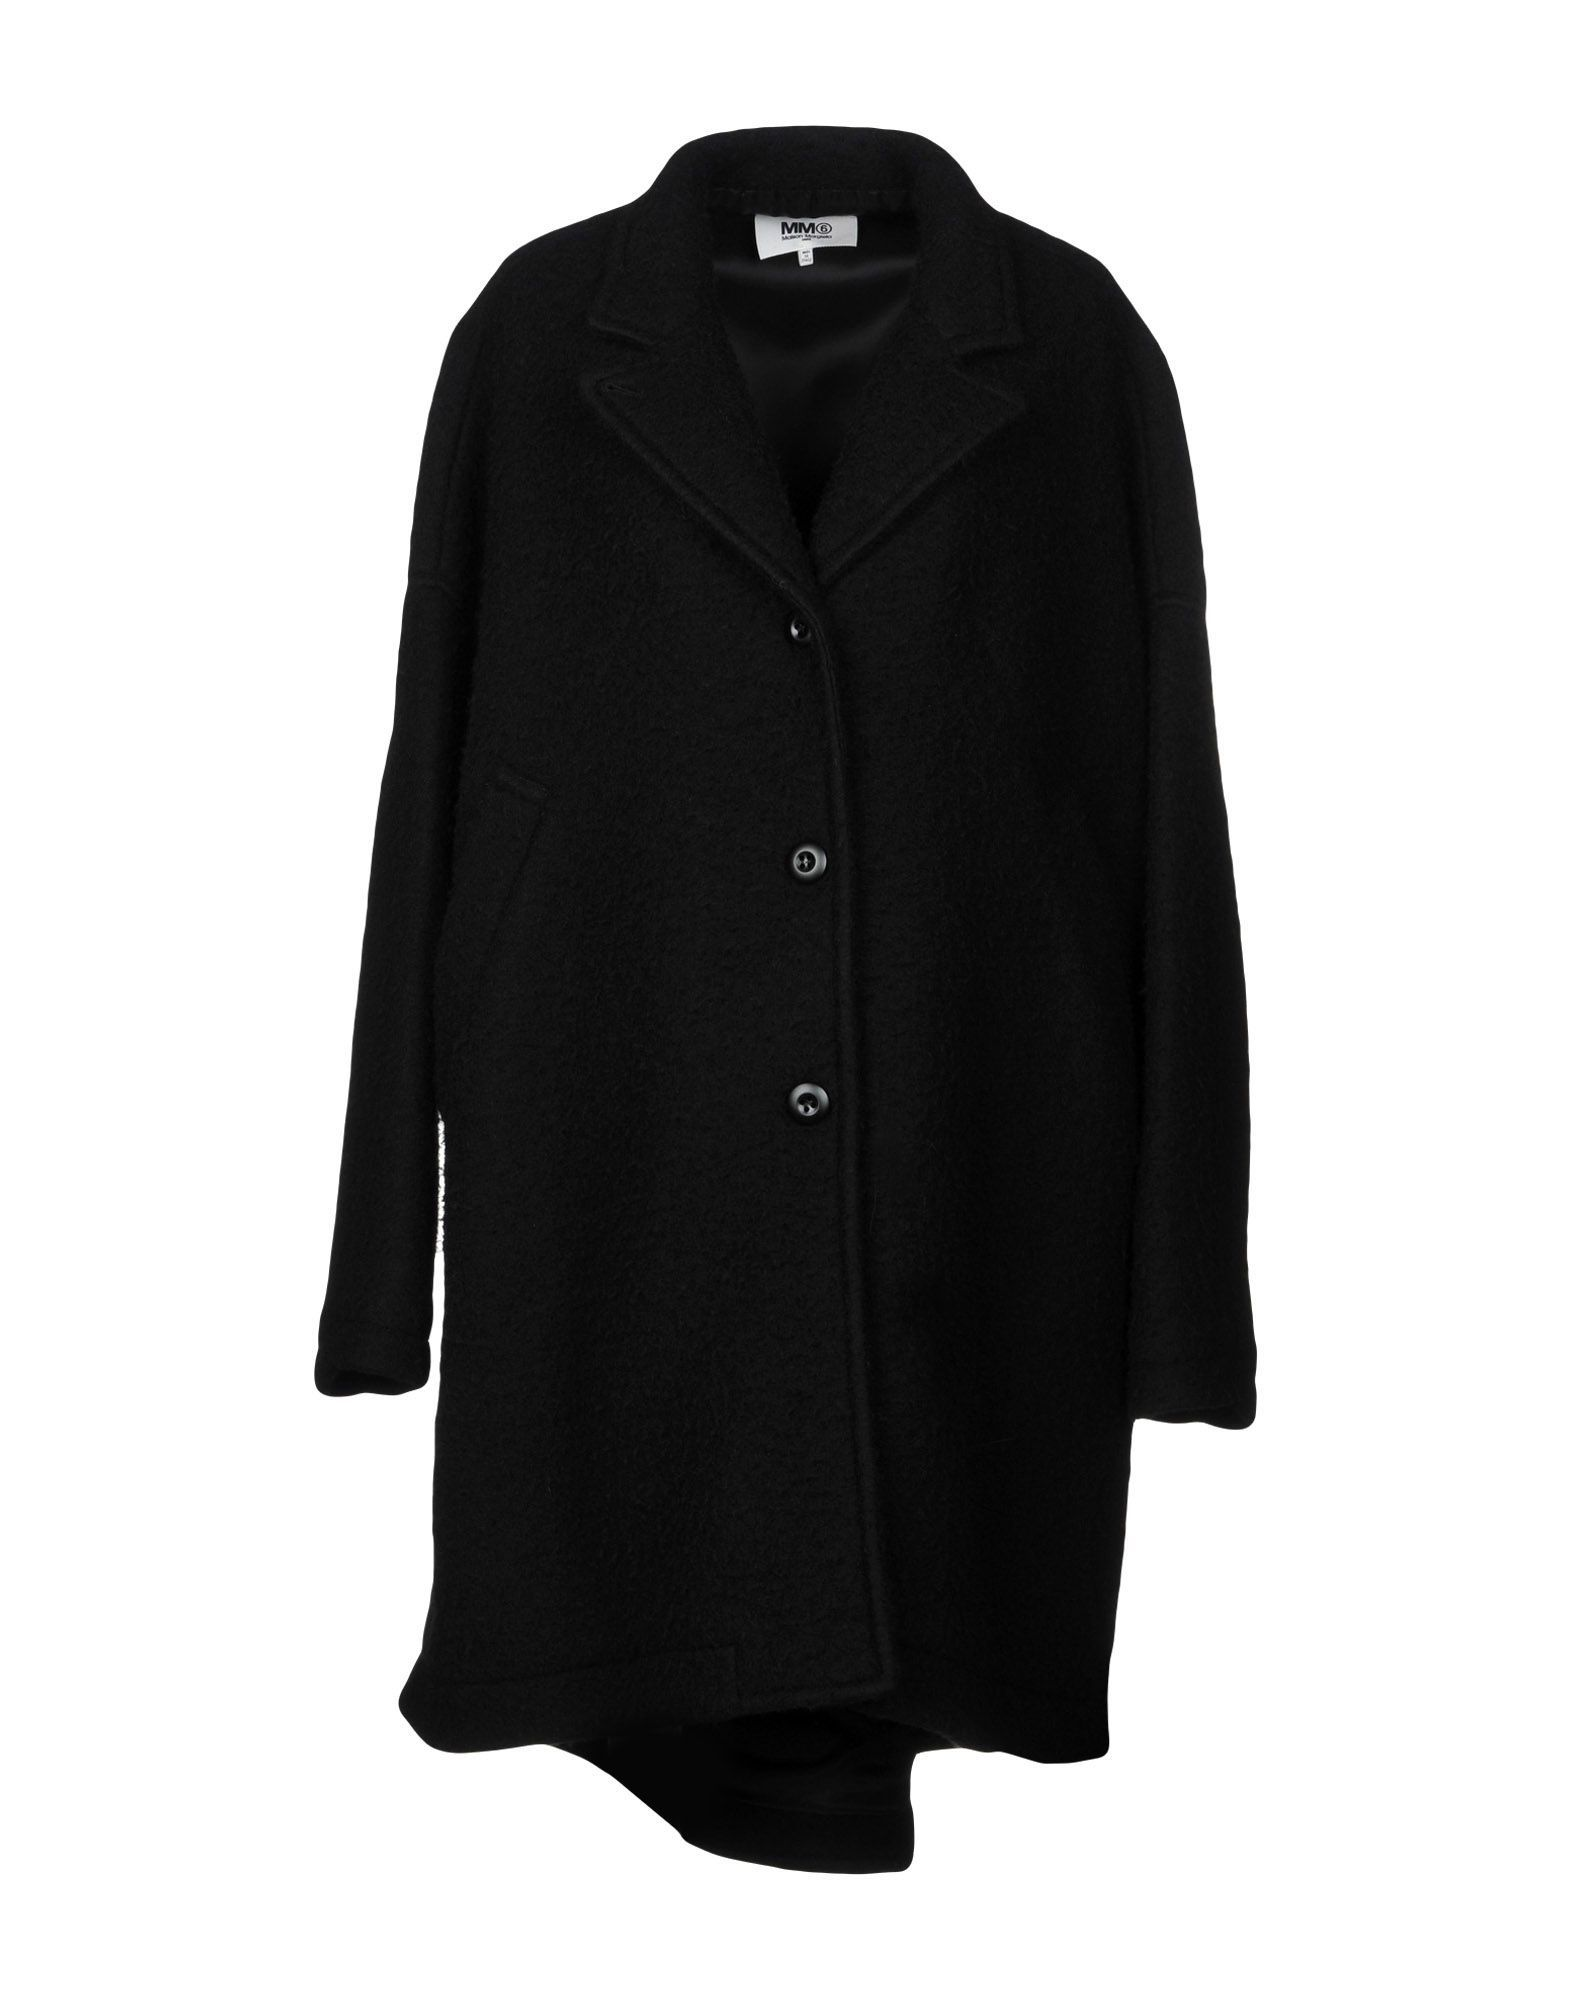 MM6 Maison Margiela Black Virgin Wool Overcoat